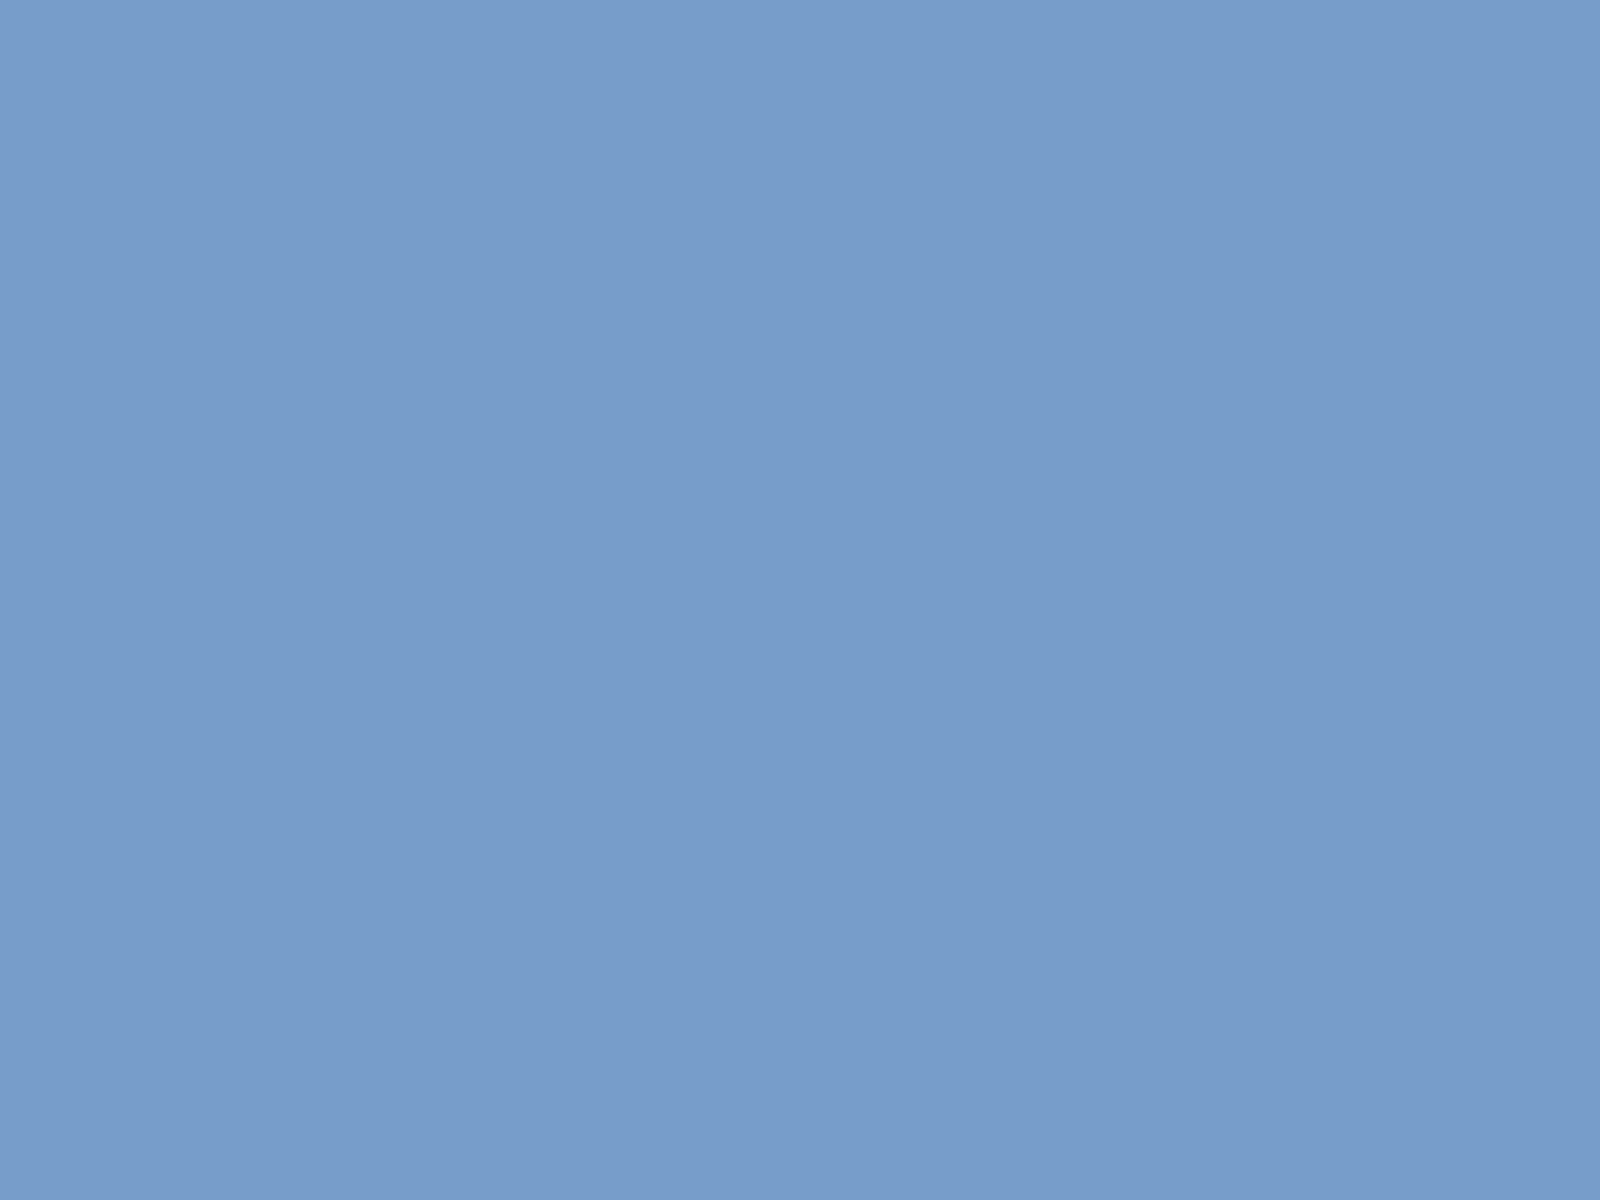 1600x1200 Dark Pastel Blue Solid Color Background